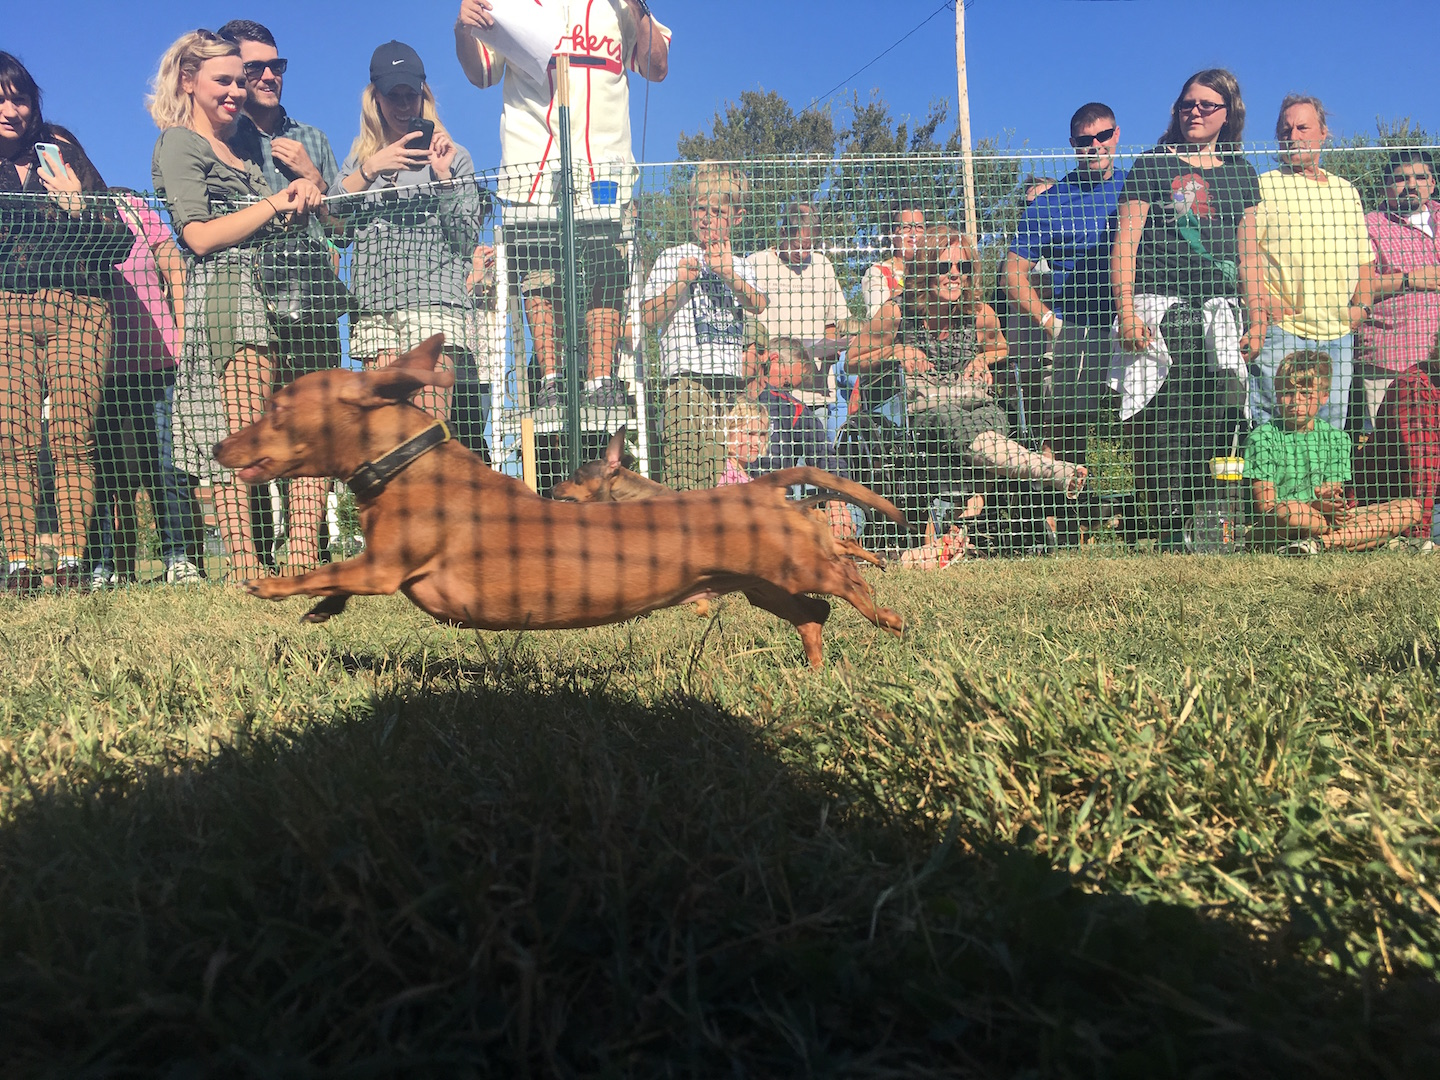 Pups Parade and Wiener Dogs Race at Nashville's Oktoberfest 2018